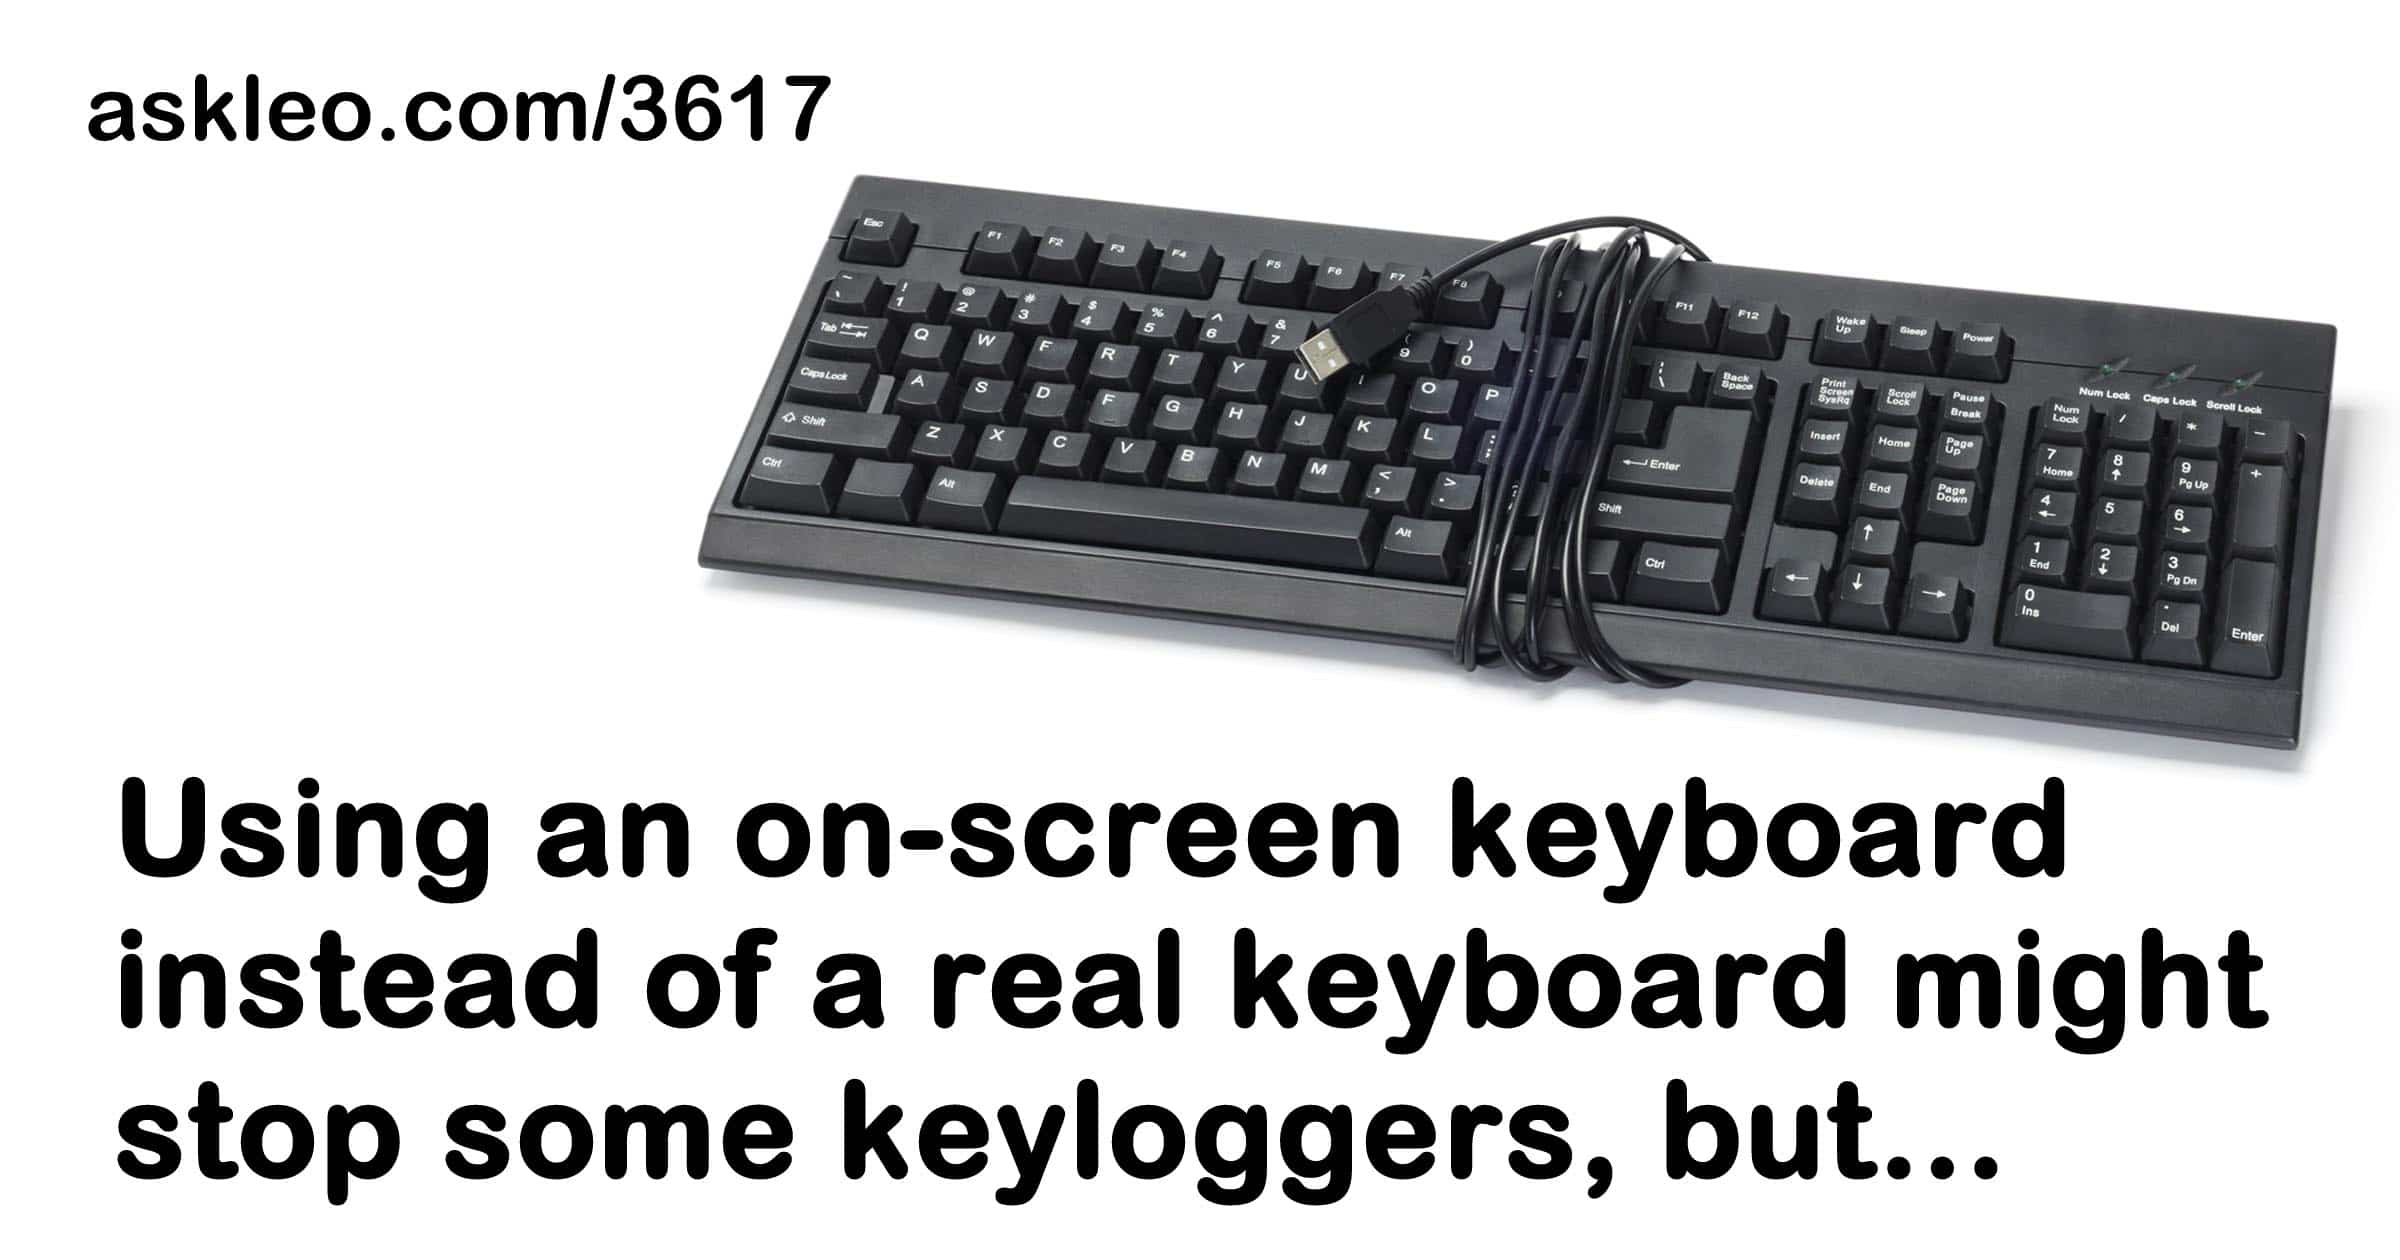 Will using an on screen keyboard stop keyboard loggers and hackers?